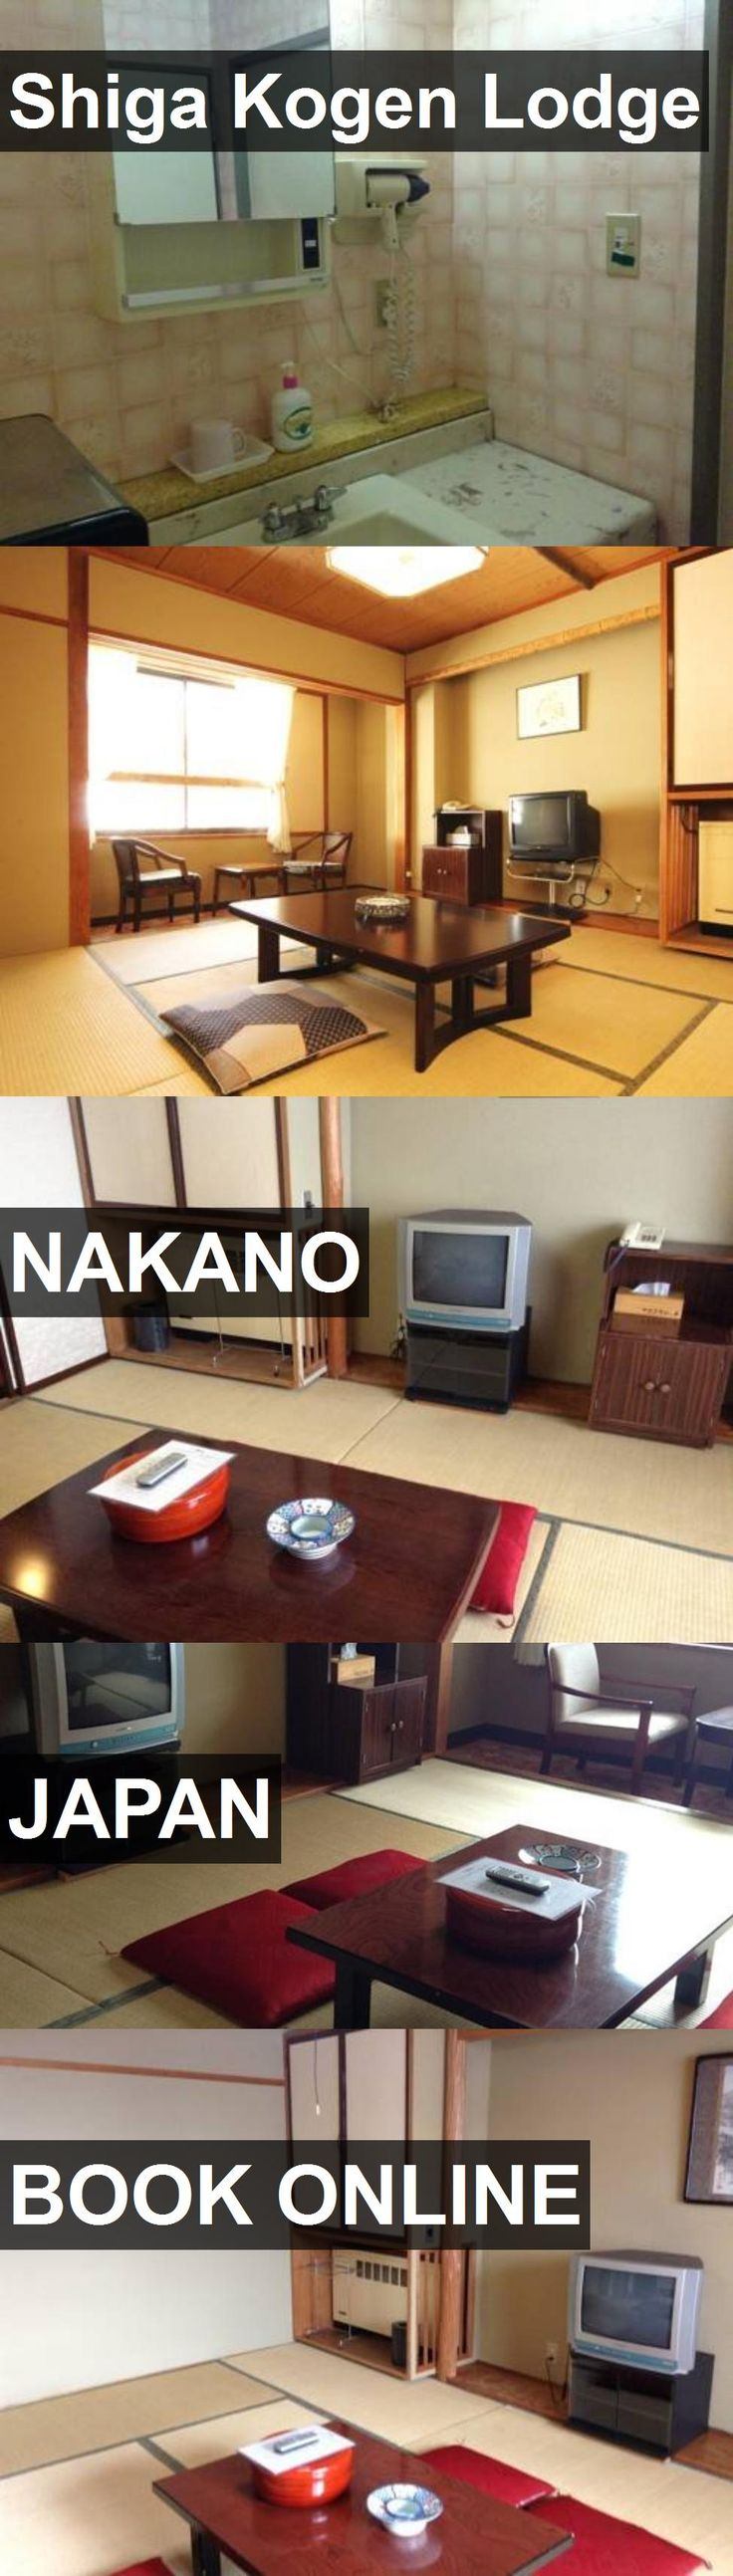 Hotel Shiga Kogen Lodge in Nakano, Japan. For more information, photos, reviews and best prices please follow the link. #Japan #Nakano #hotel #travel #vacation